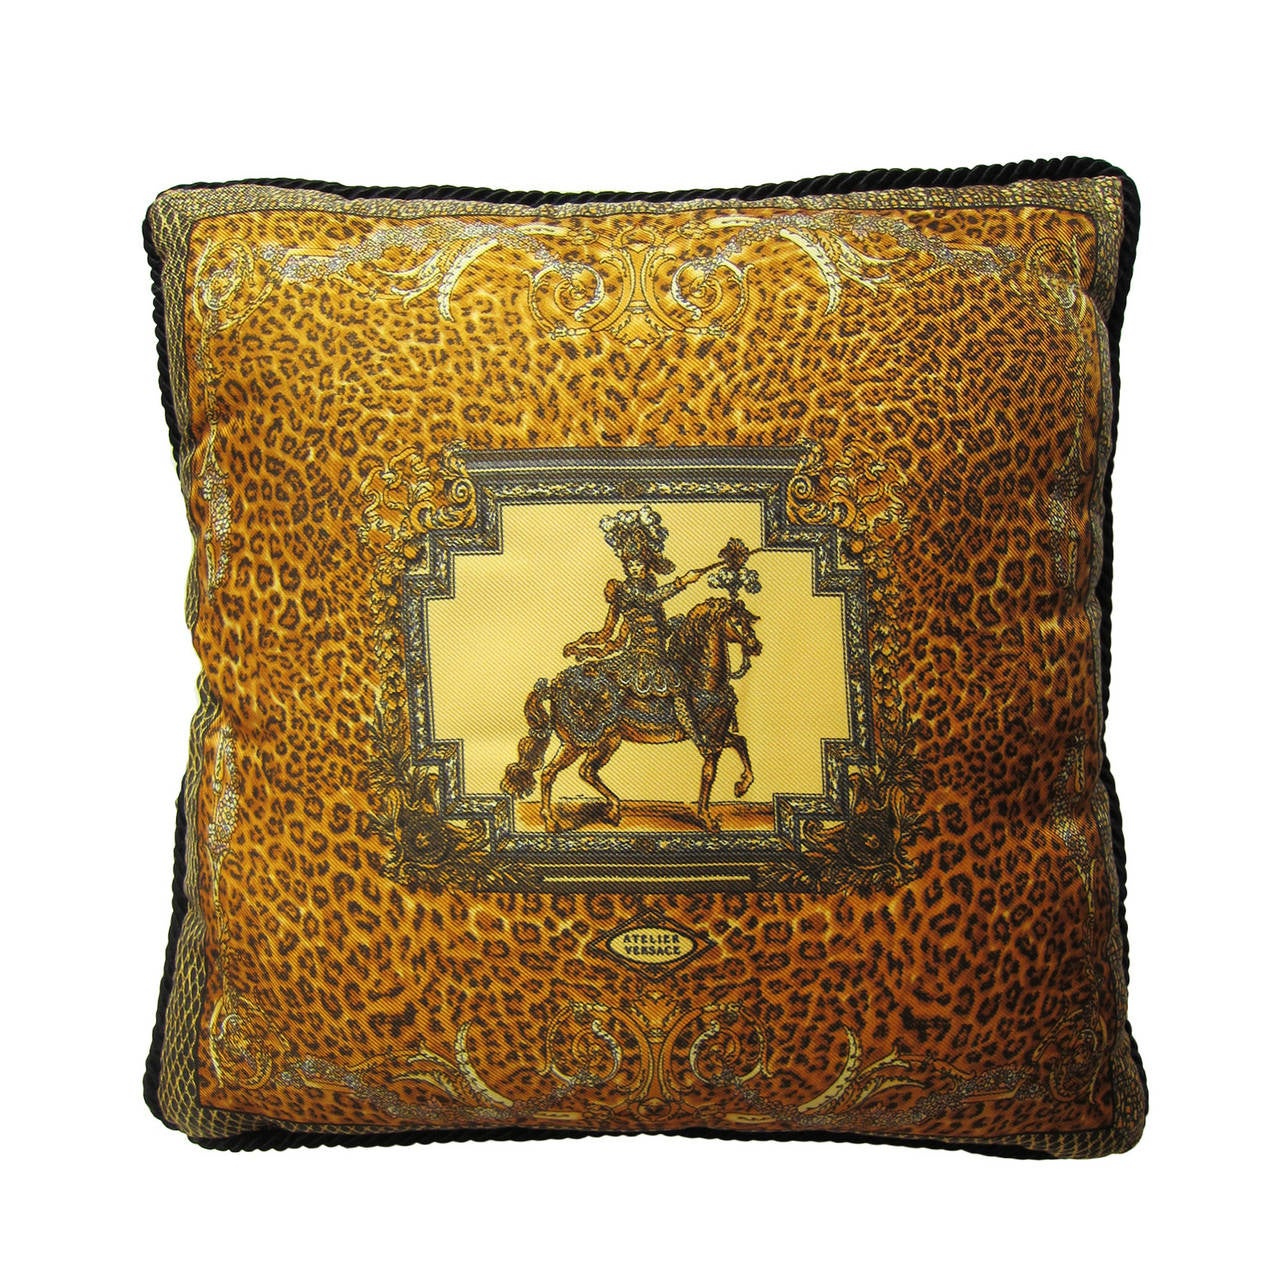 Atelier Versace Silk Pillow Leopard At 1stdibs